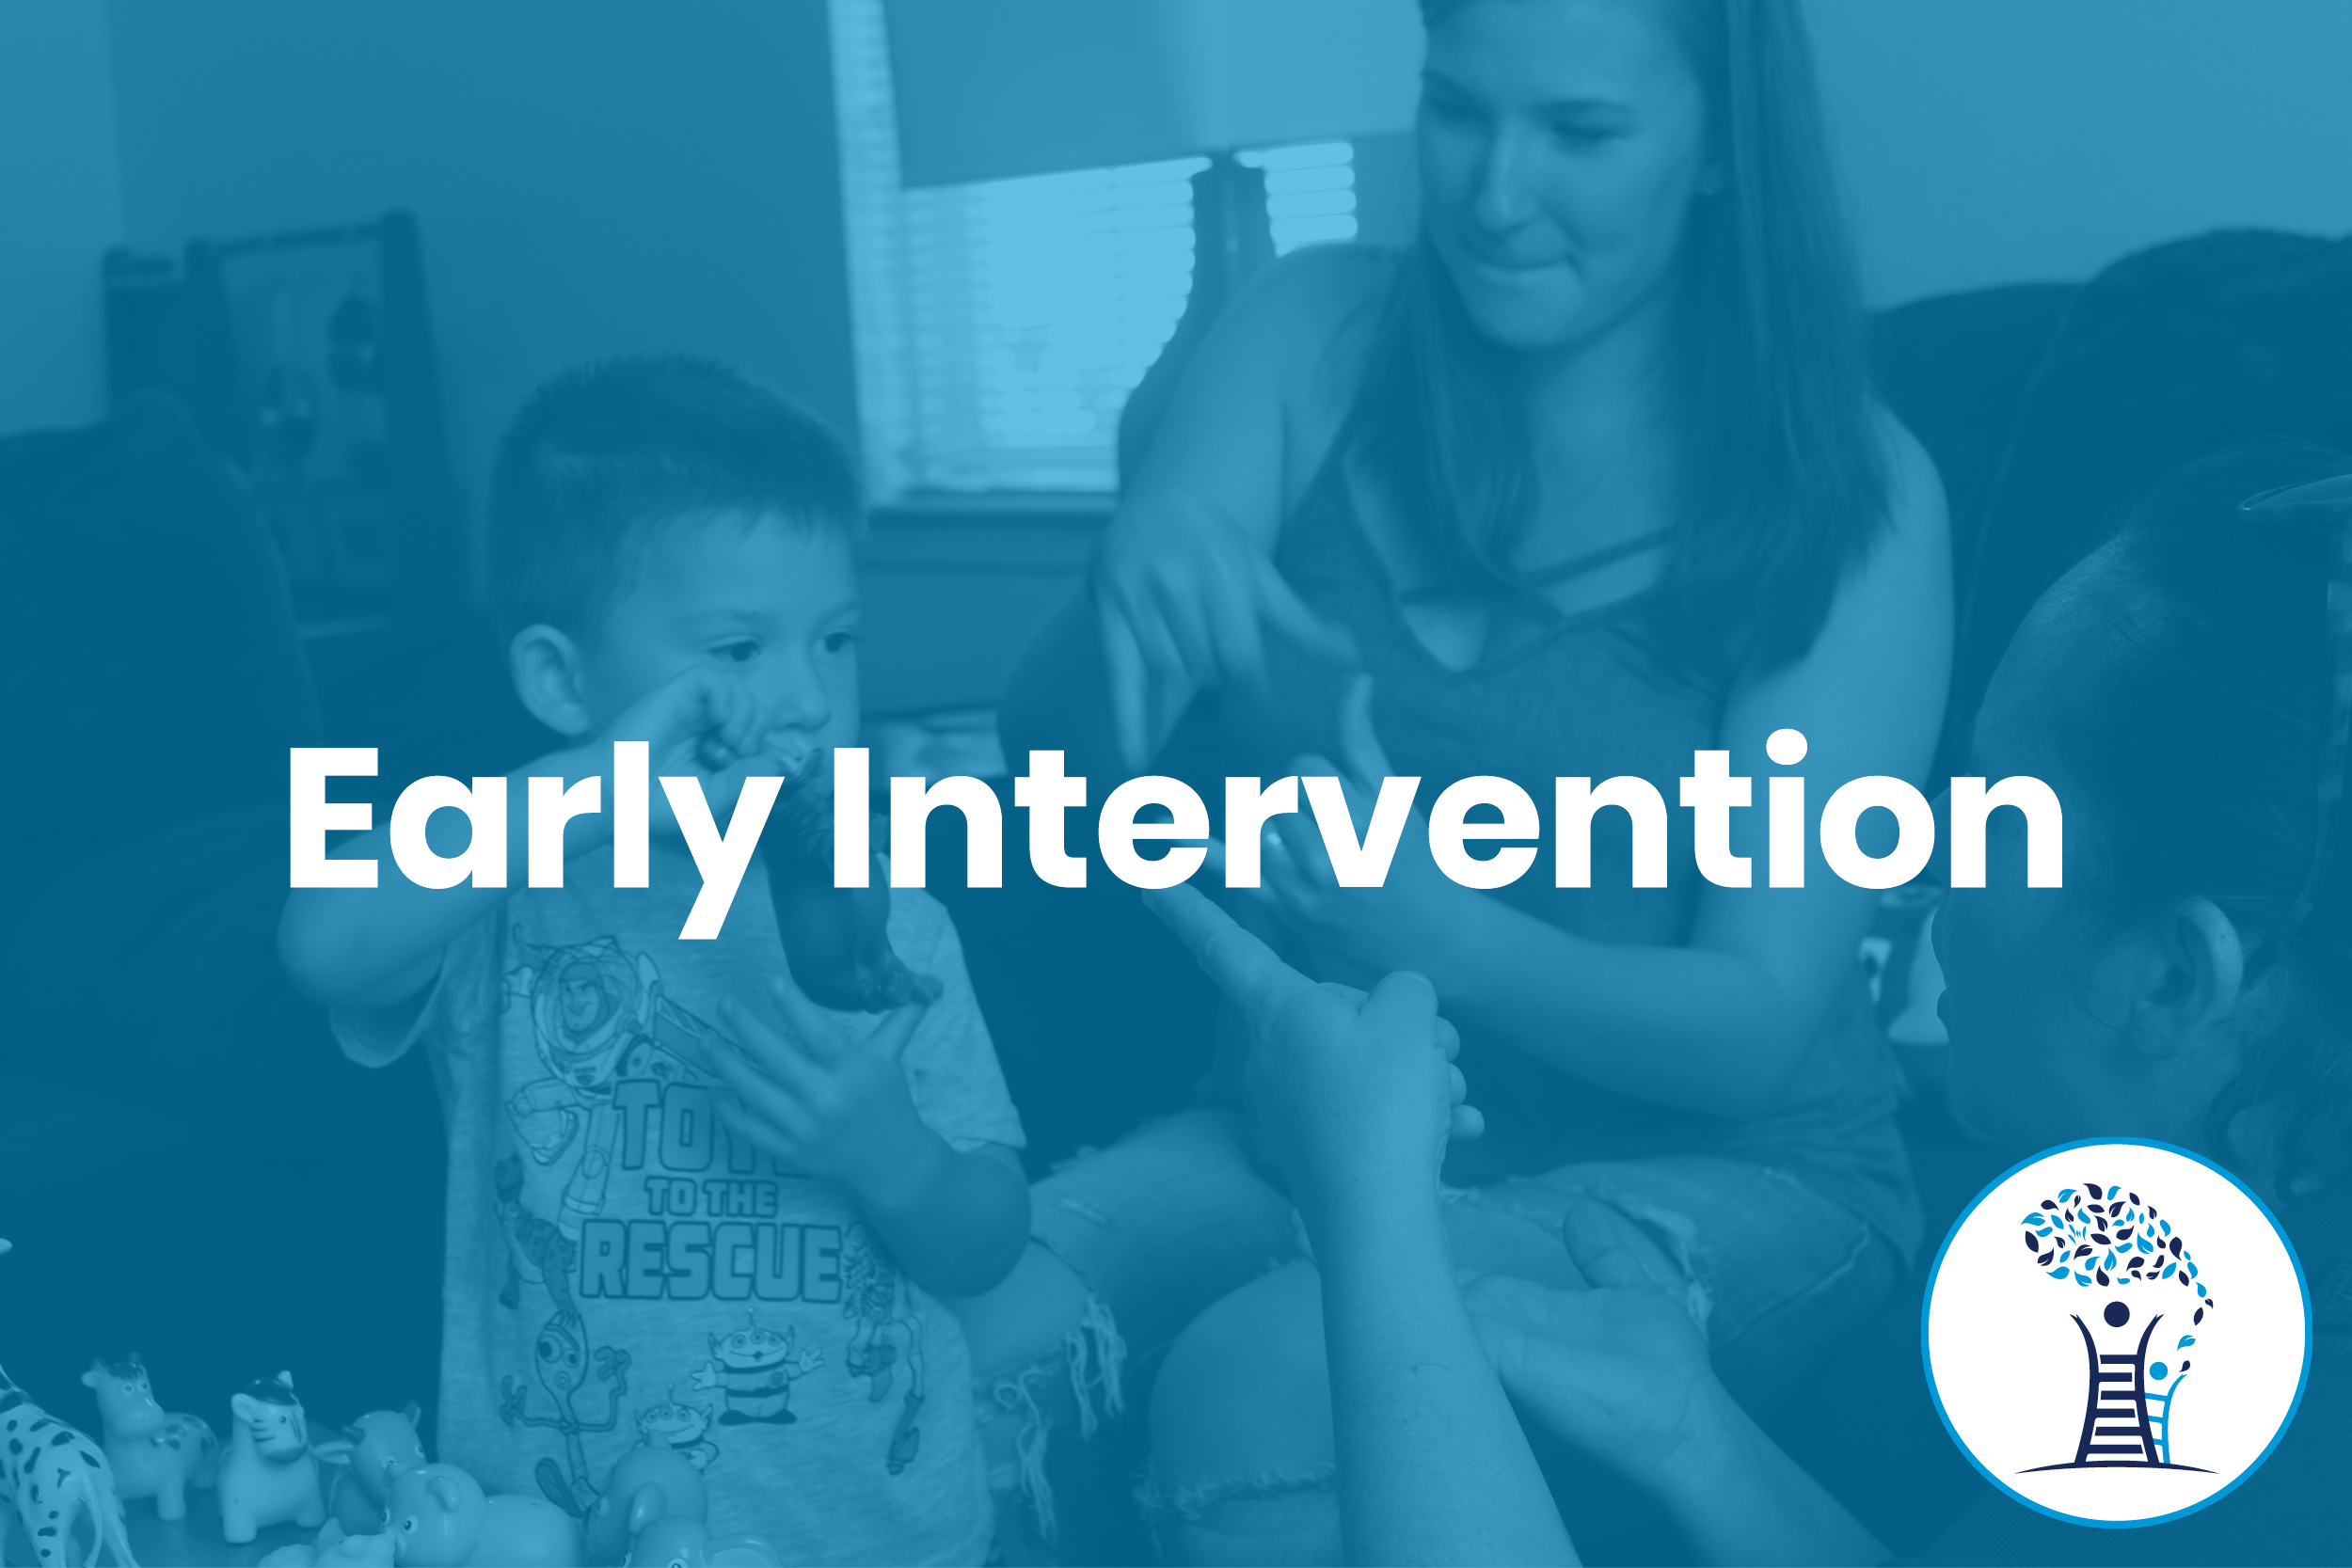 Living room background; two women teaching a little boy signing in American Sign Language with blue shade; text: Early Intervention with a logo inside the white circle in the bottom, right corner